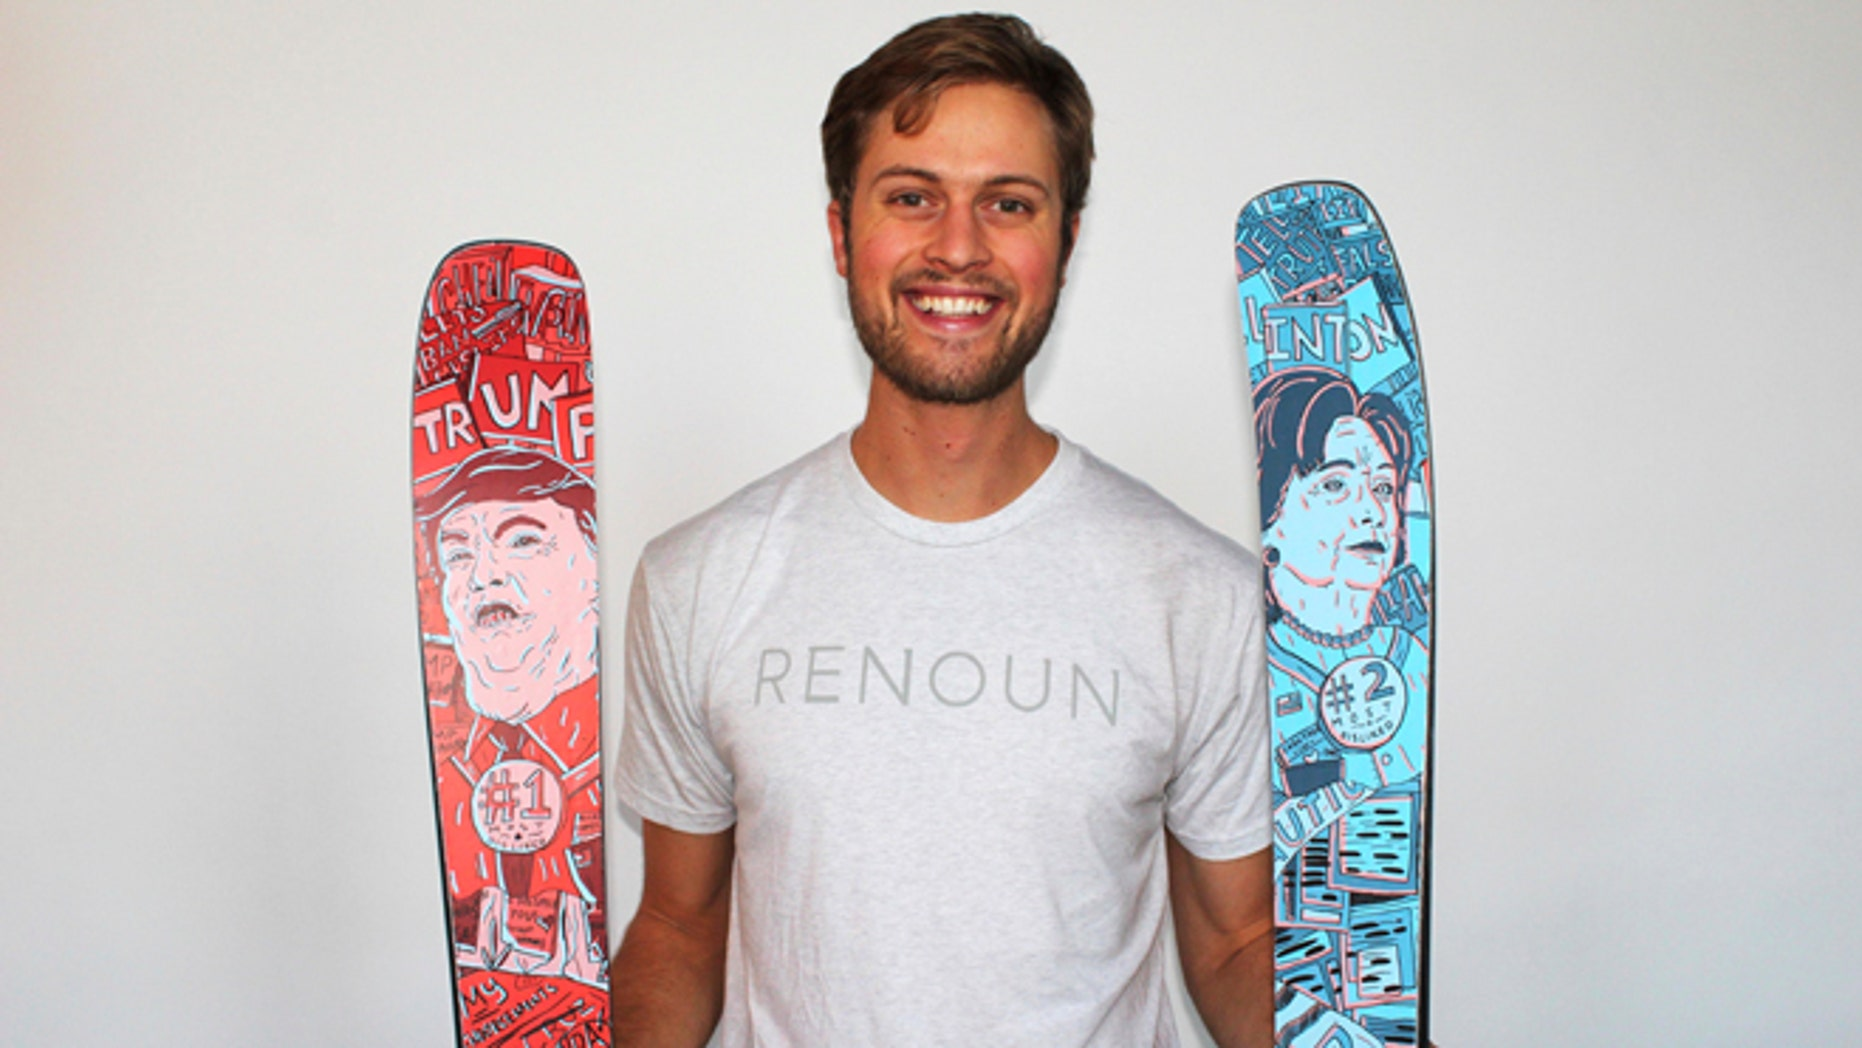 In this photo provided by Renoun, CEO Cyrus Schenck, poses with a  pair of skis featuring Hillary Clinton imagery, at right,  and Donald Trump, at left. (Courtesy of  Renoun via AP)